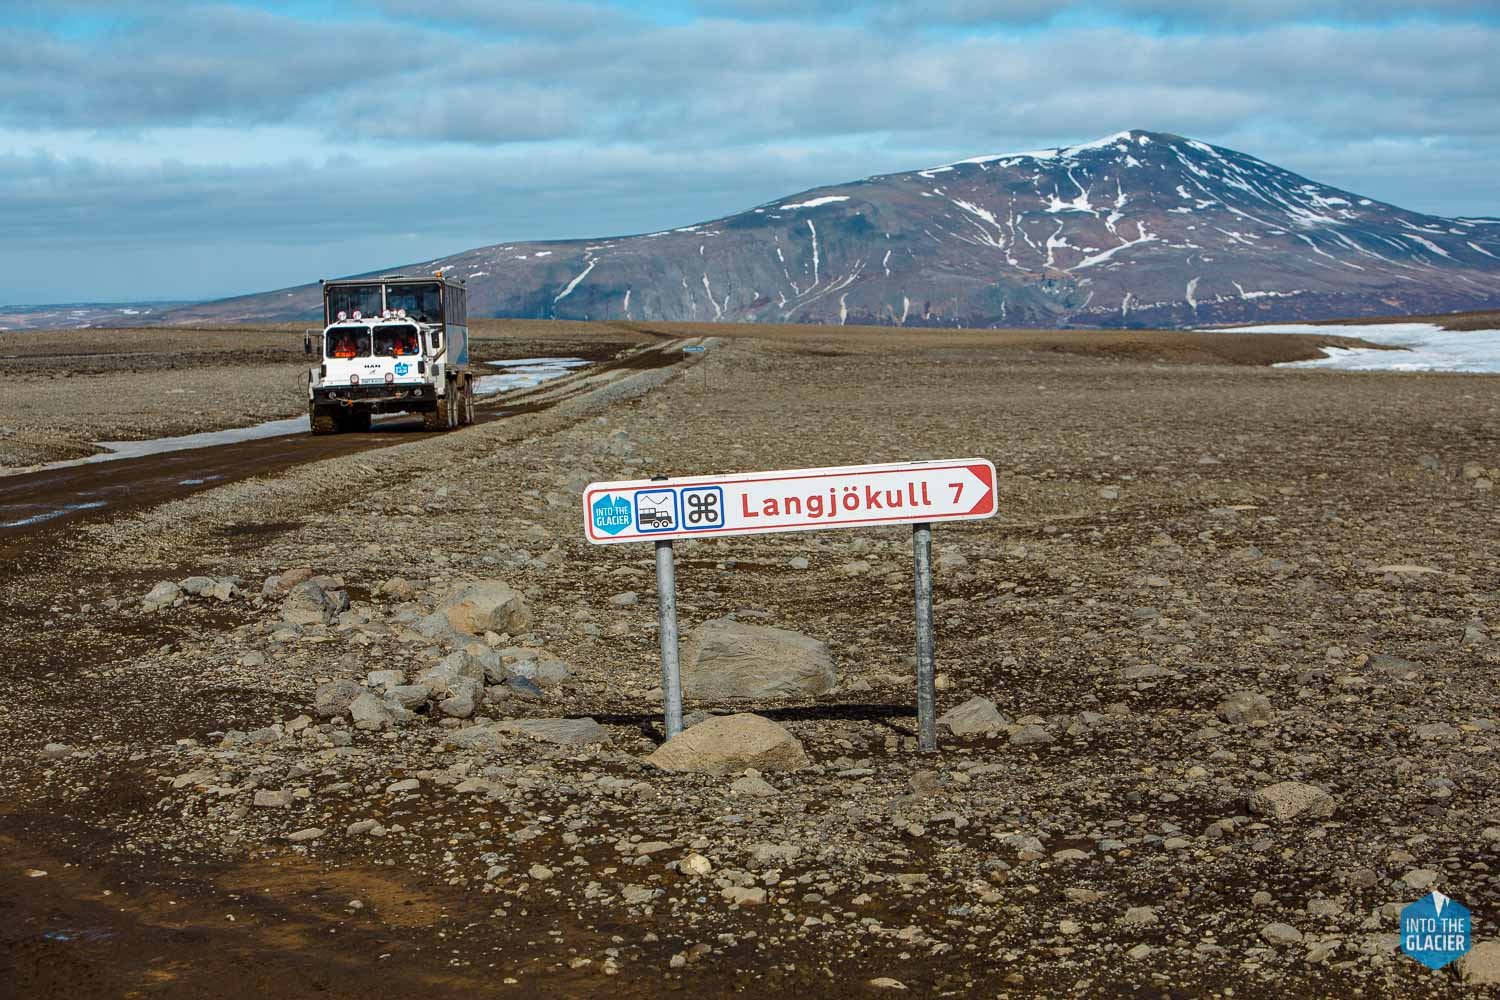 Road sign to Langjokull